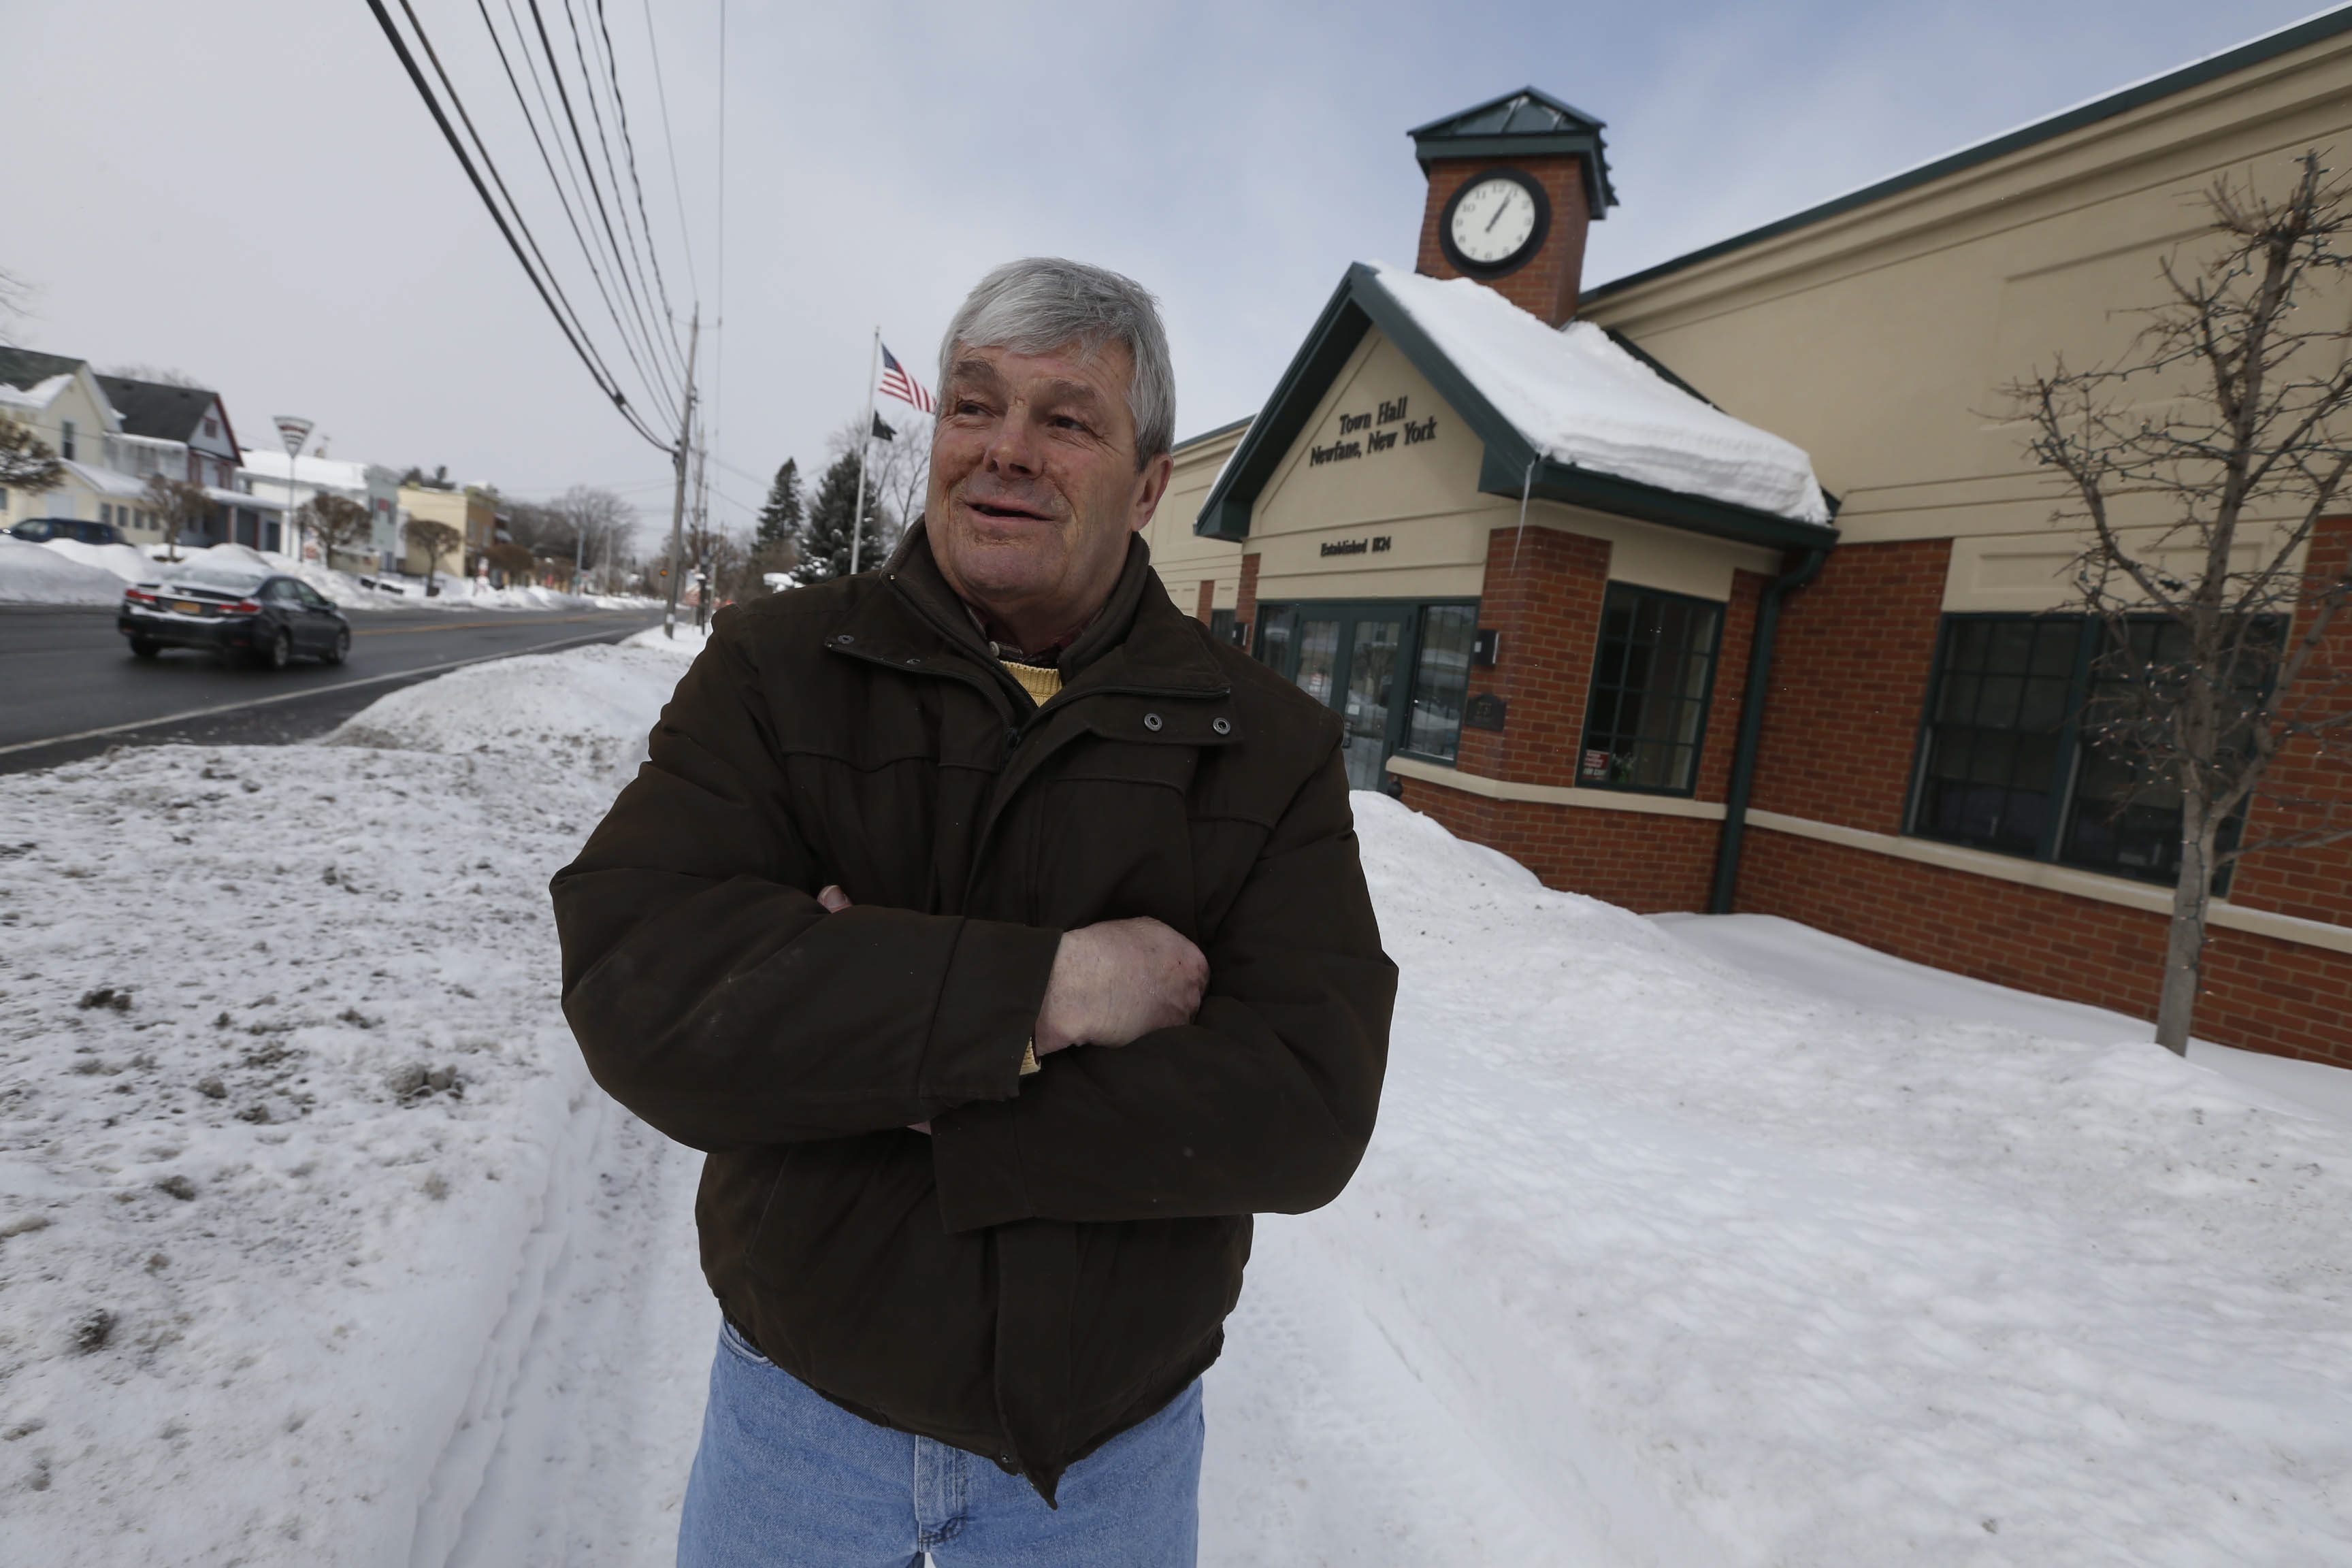 Newfane Town Supervisor Tim Horanburg discusses planned improvements for Main Street on Monday. The $421,000 facelift will be funded in part by a grant from the federal Transportation Enhancement Program Project.